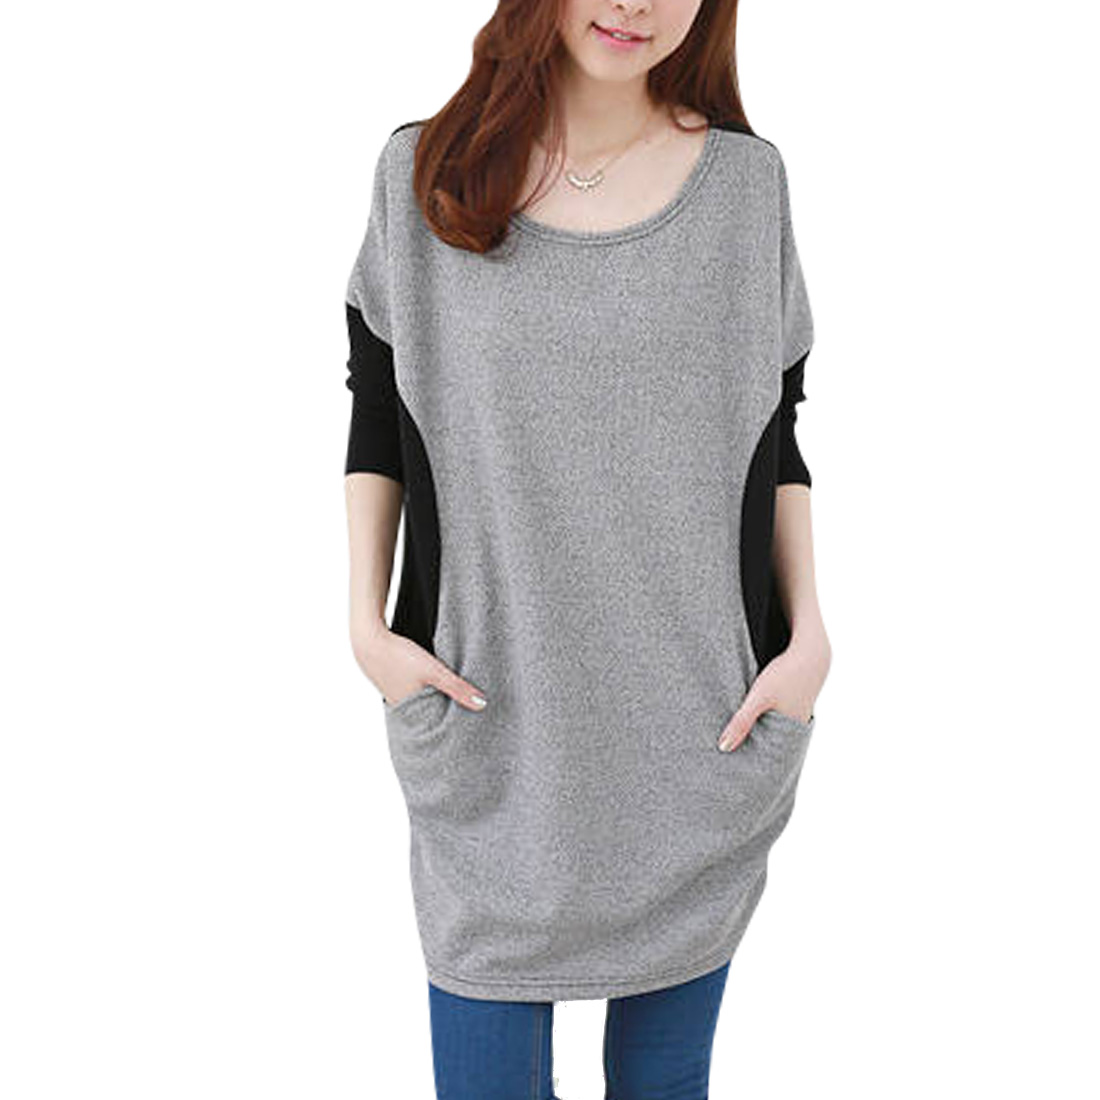 Women Batwing Sleeved Double Pocket Black Gray Knit Tunic Shirt S